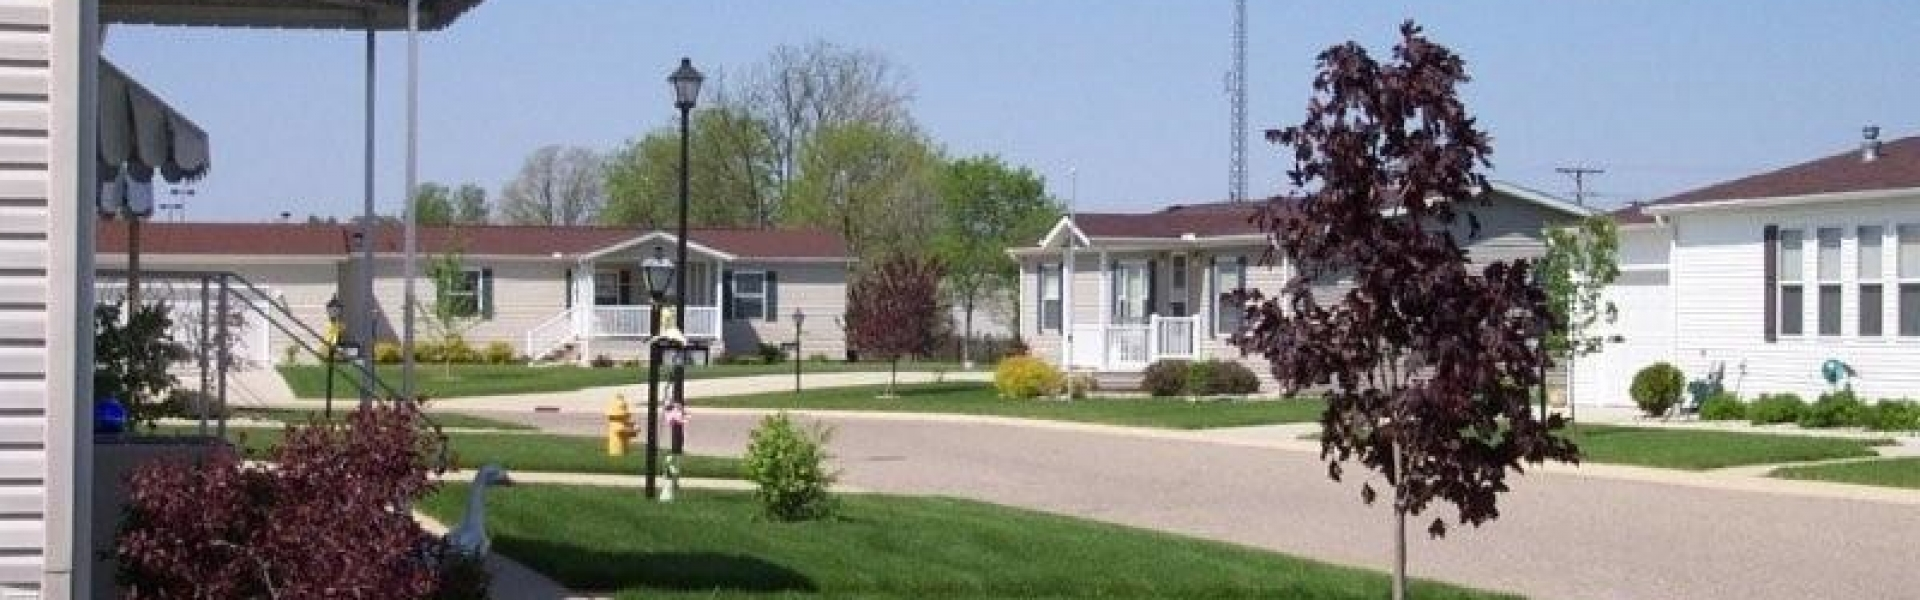 The Willows Mobile Home Park